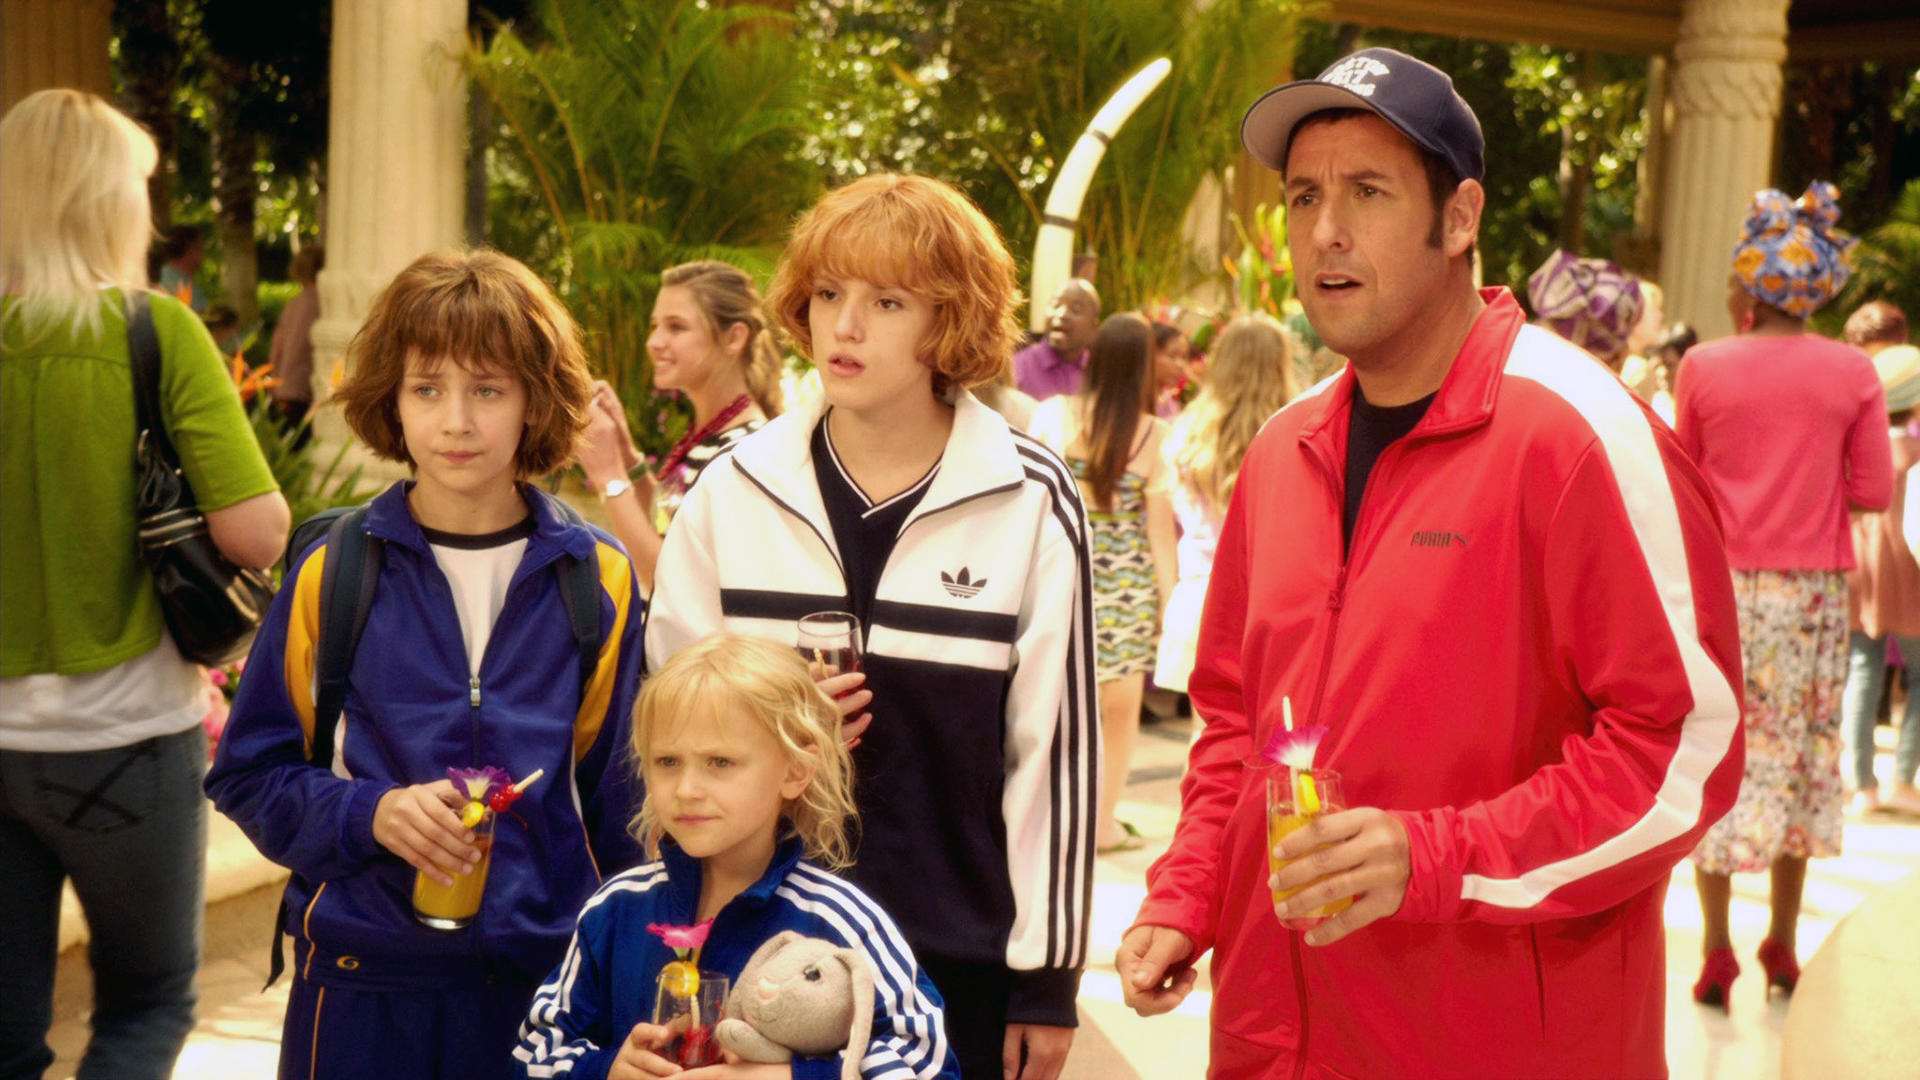 5 Reasons Why Adam Sandler Is a Good Role Model | Fandango